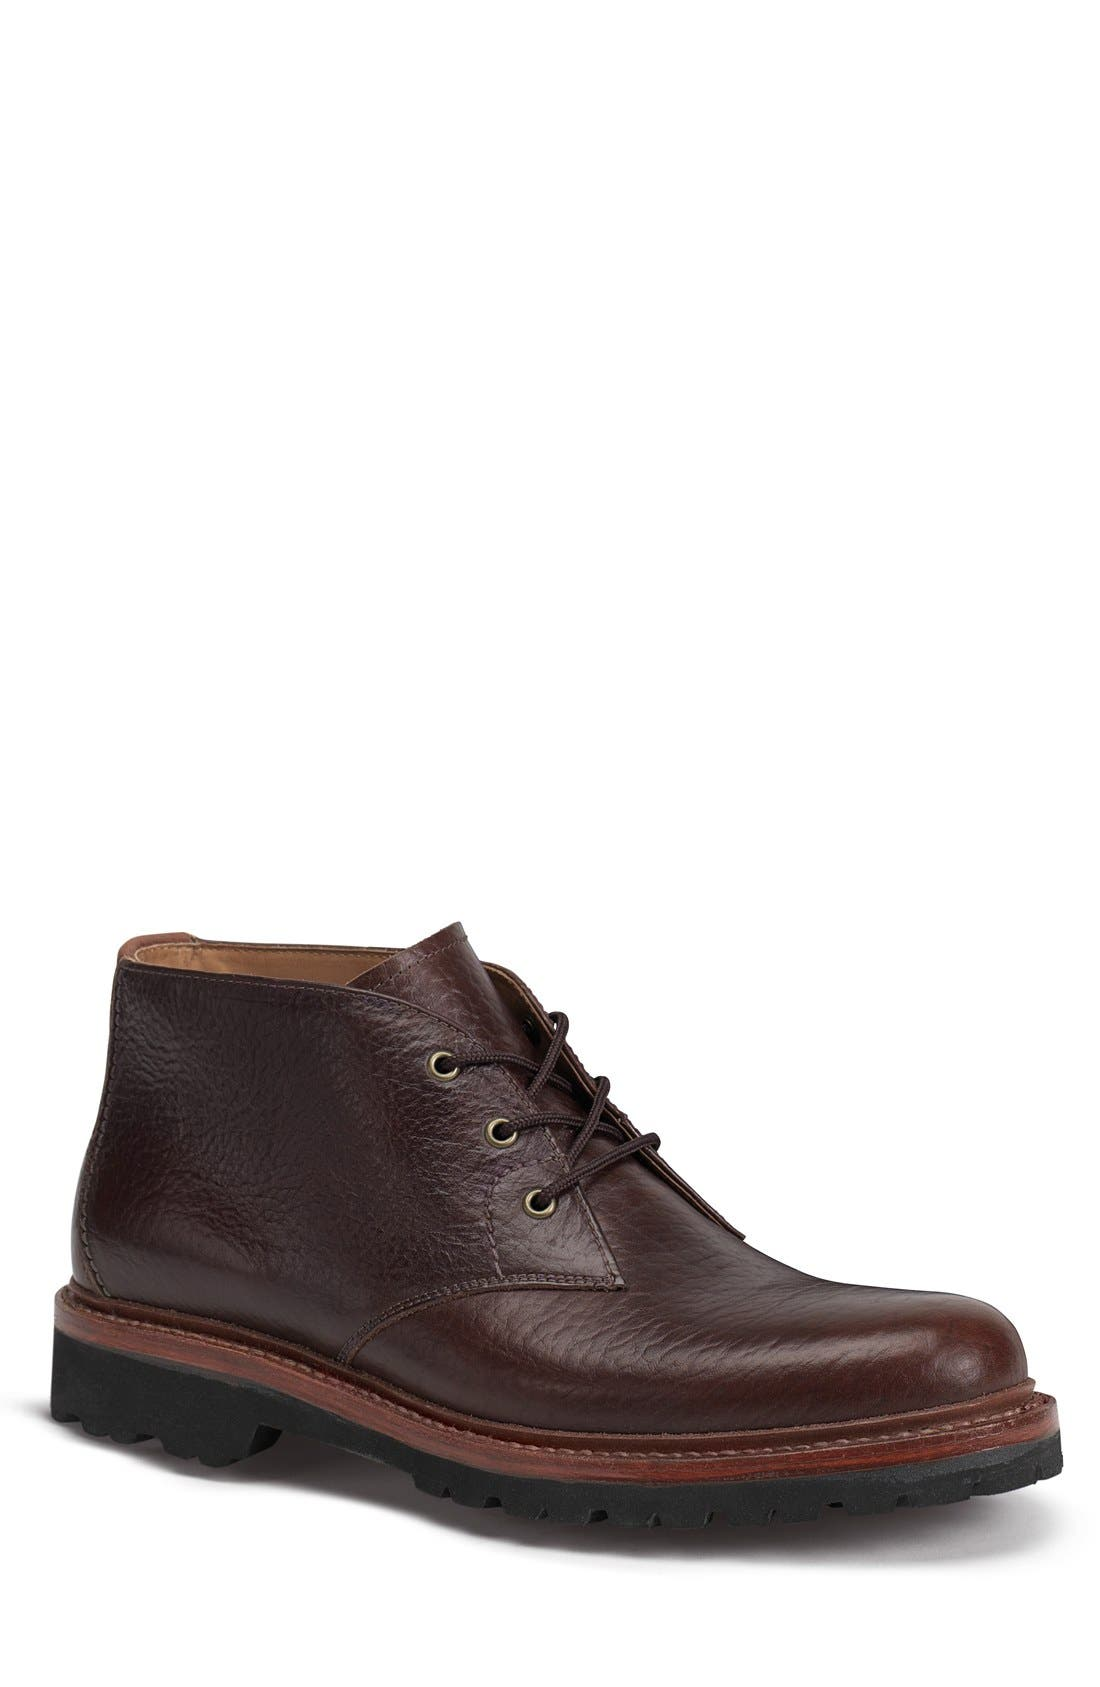 Alternate Image 1 Selected - Trask 'Gulch II' Chukka Boot (Men)